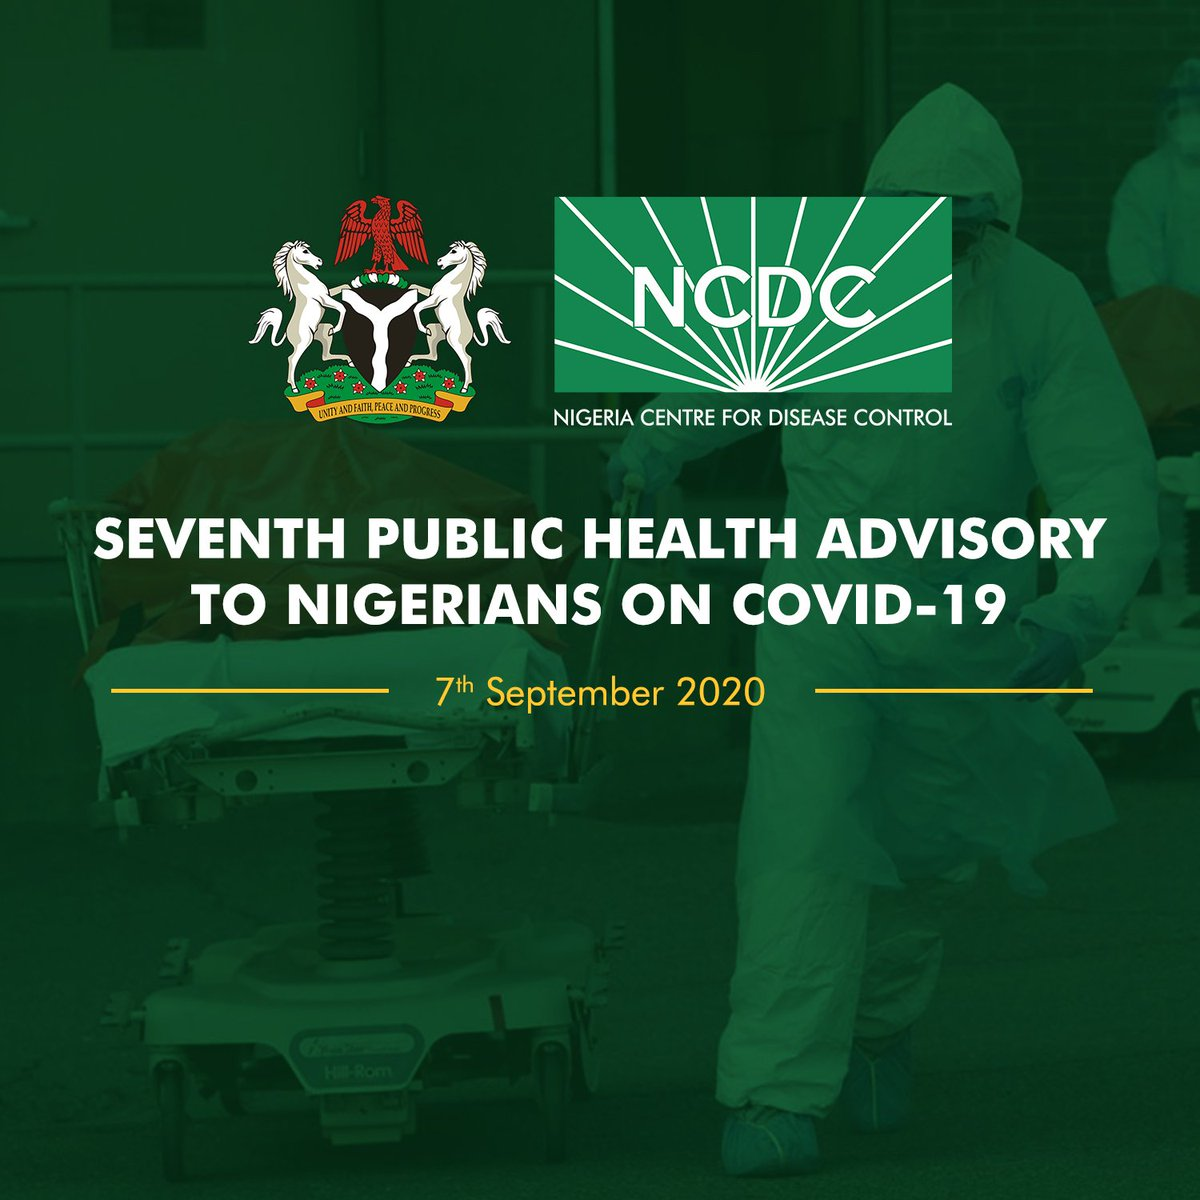 📢COVID-19 UPDATE!!! Our Public Health Advisory to Nigerians on #COVID19 is updated regularly to reflect the latest information on #COVID19Nigeria including: ✅Travel advice ✅Advice for health workers ✅Advice for businesses Read: covid19.ncdc.gov.ng/advisory/ #TakeResponsibility